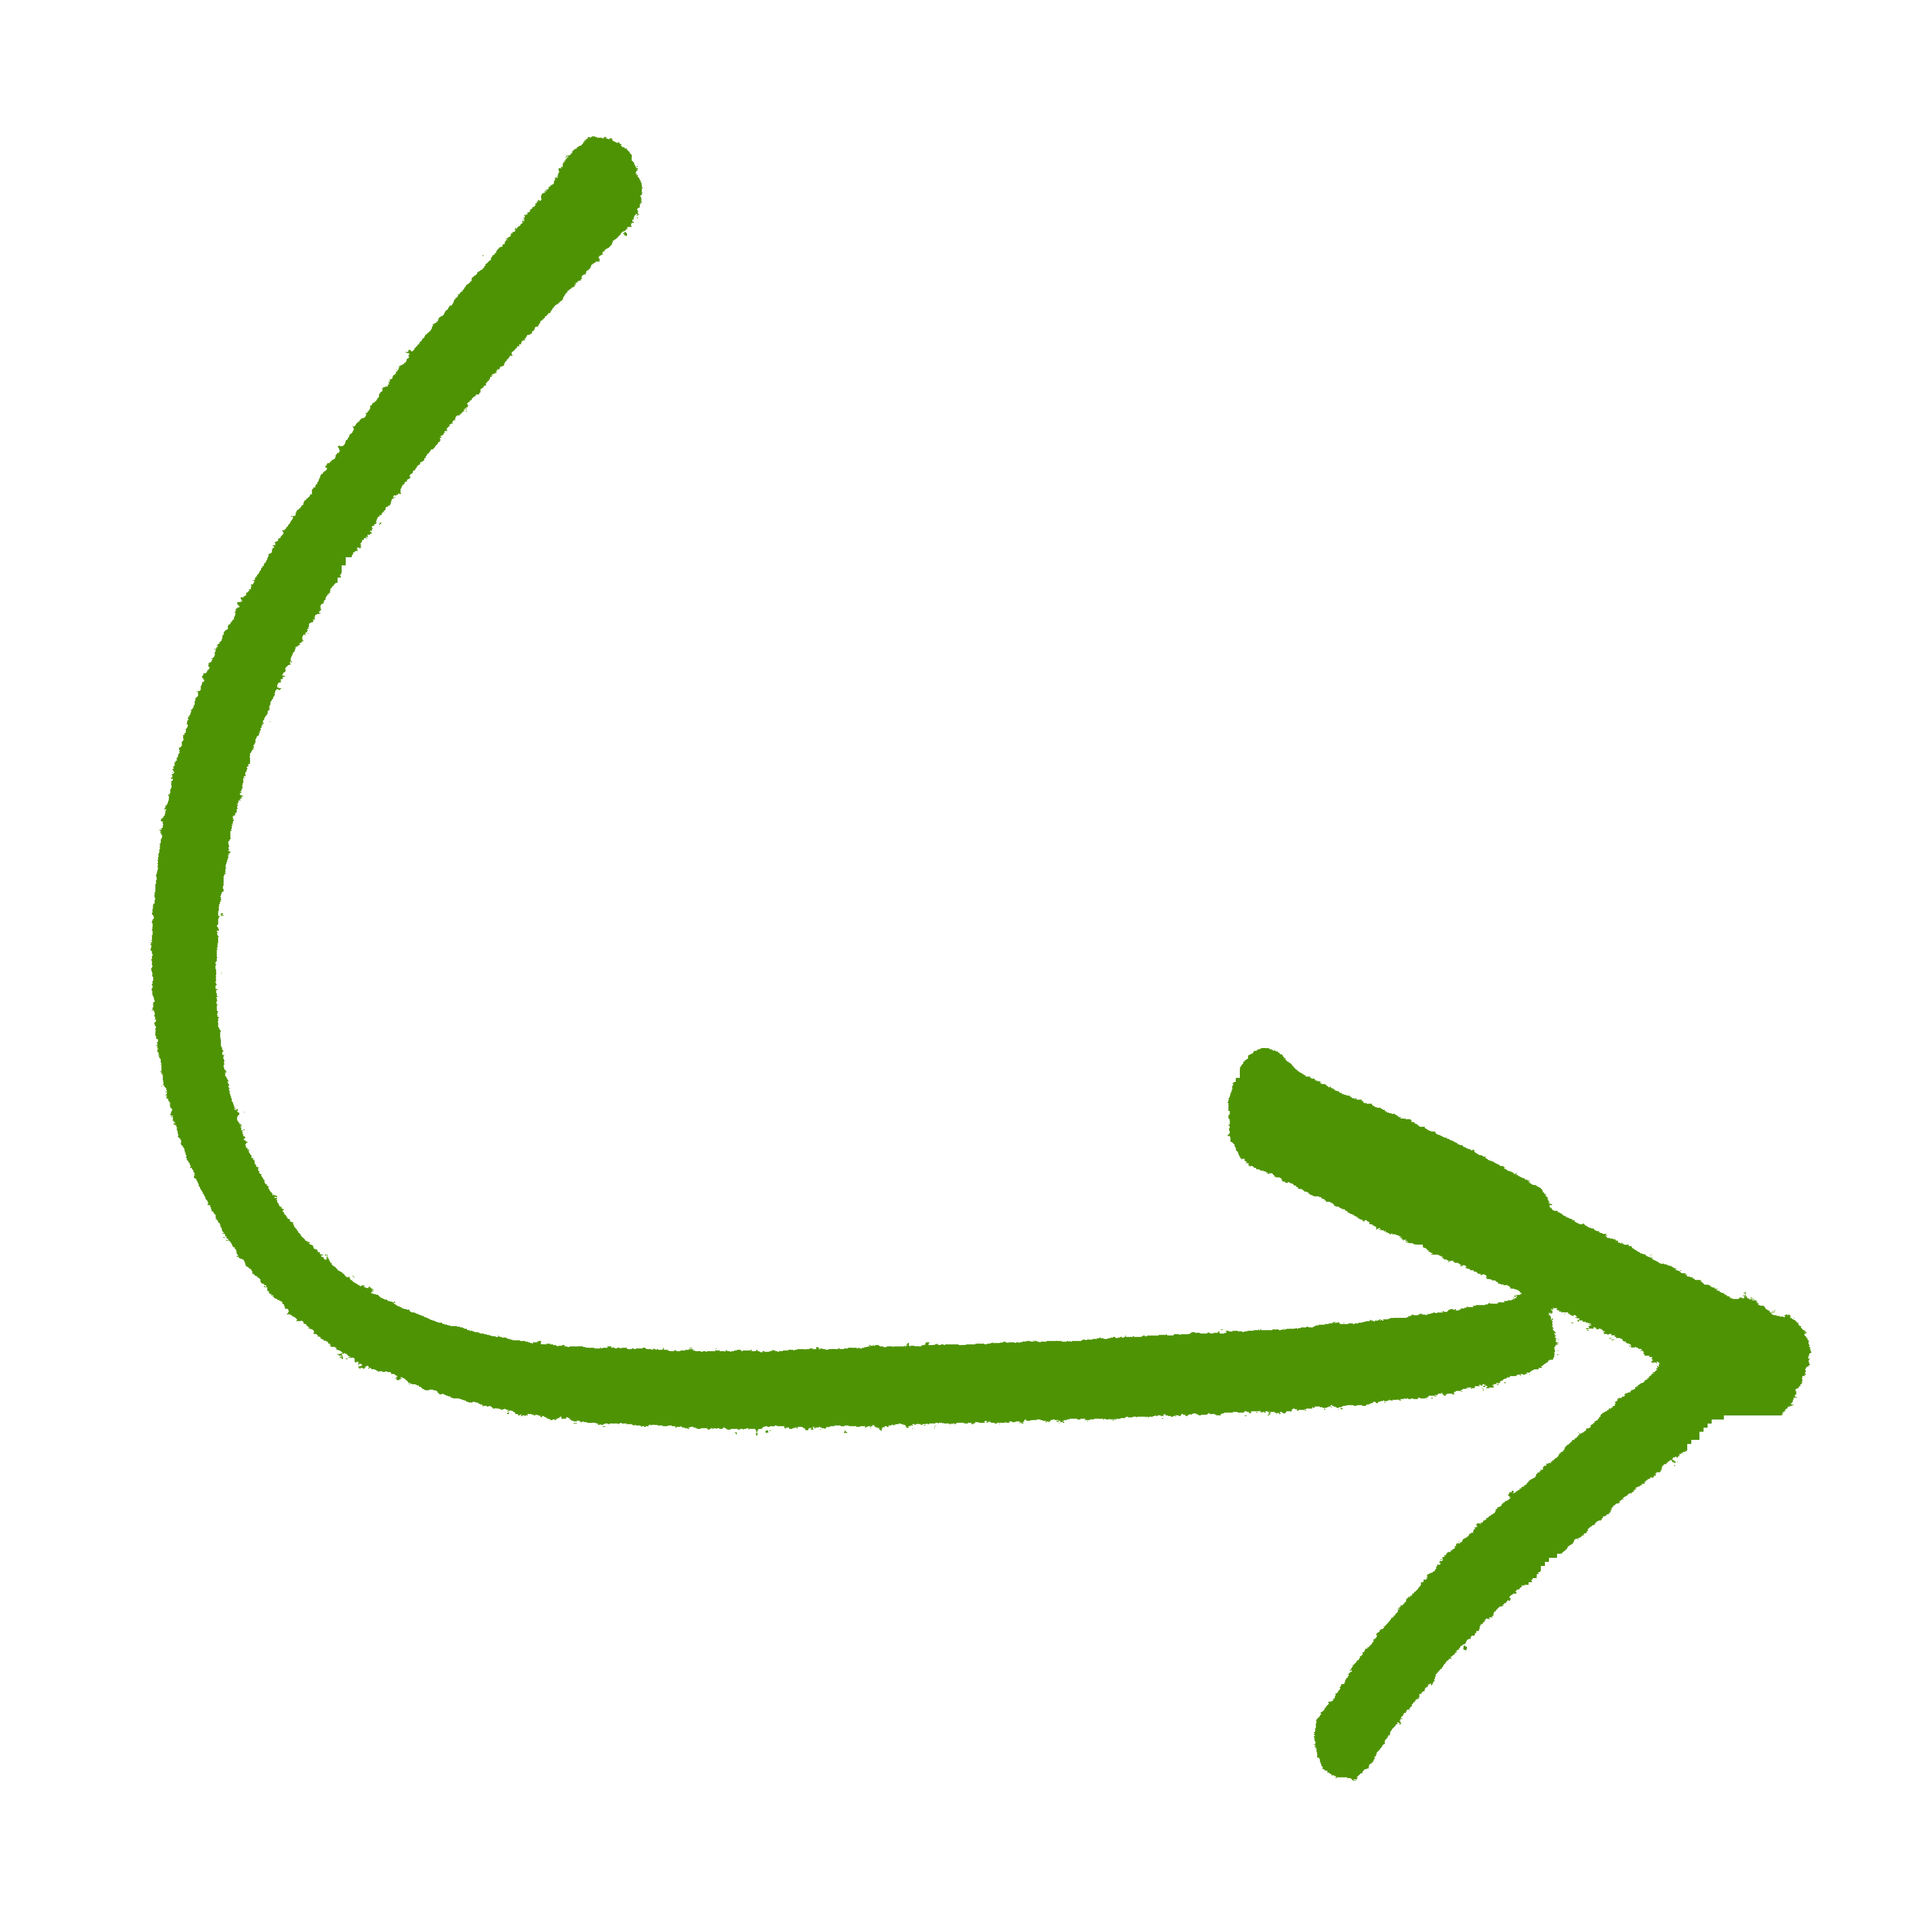 green down curved arrow png